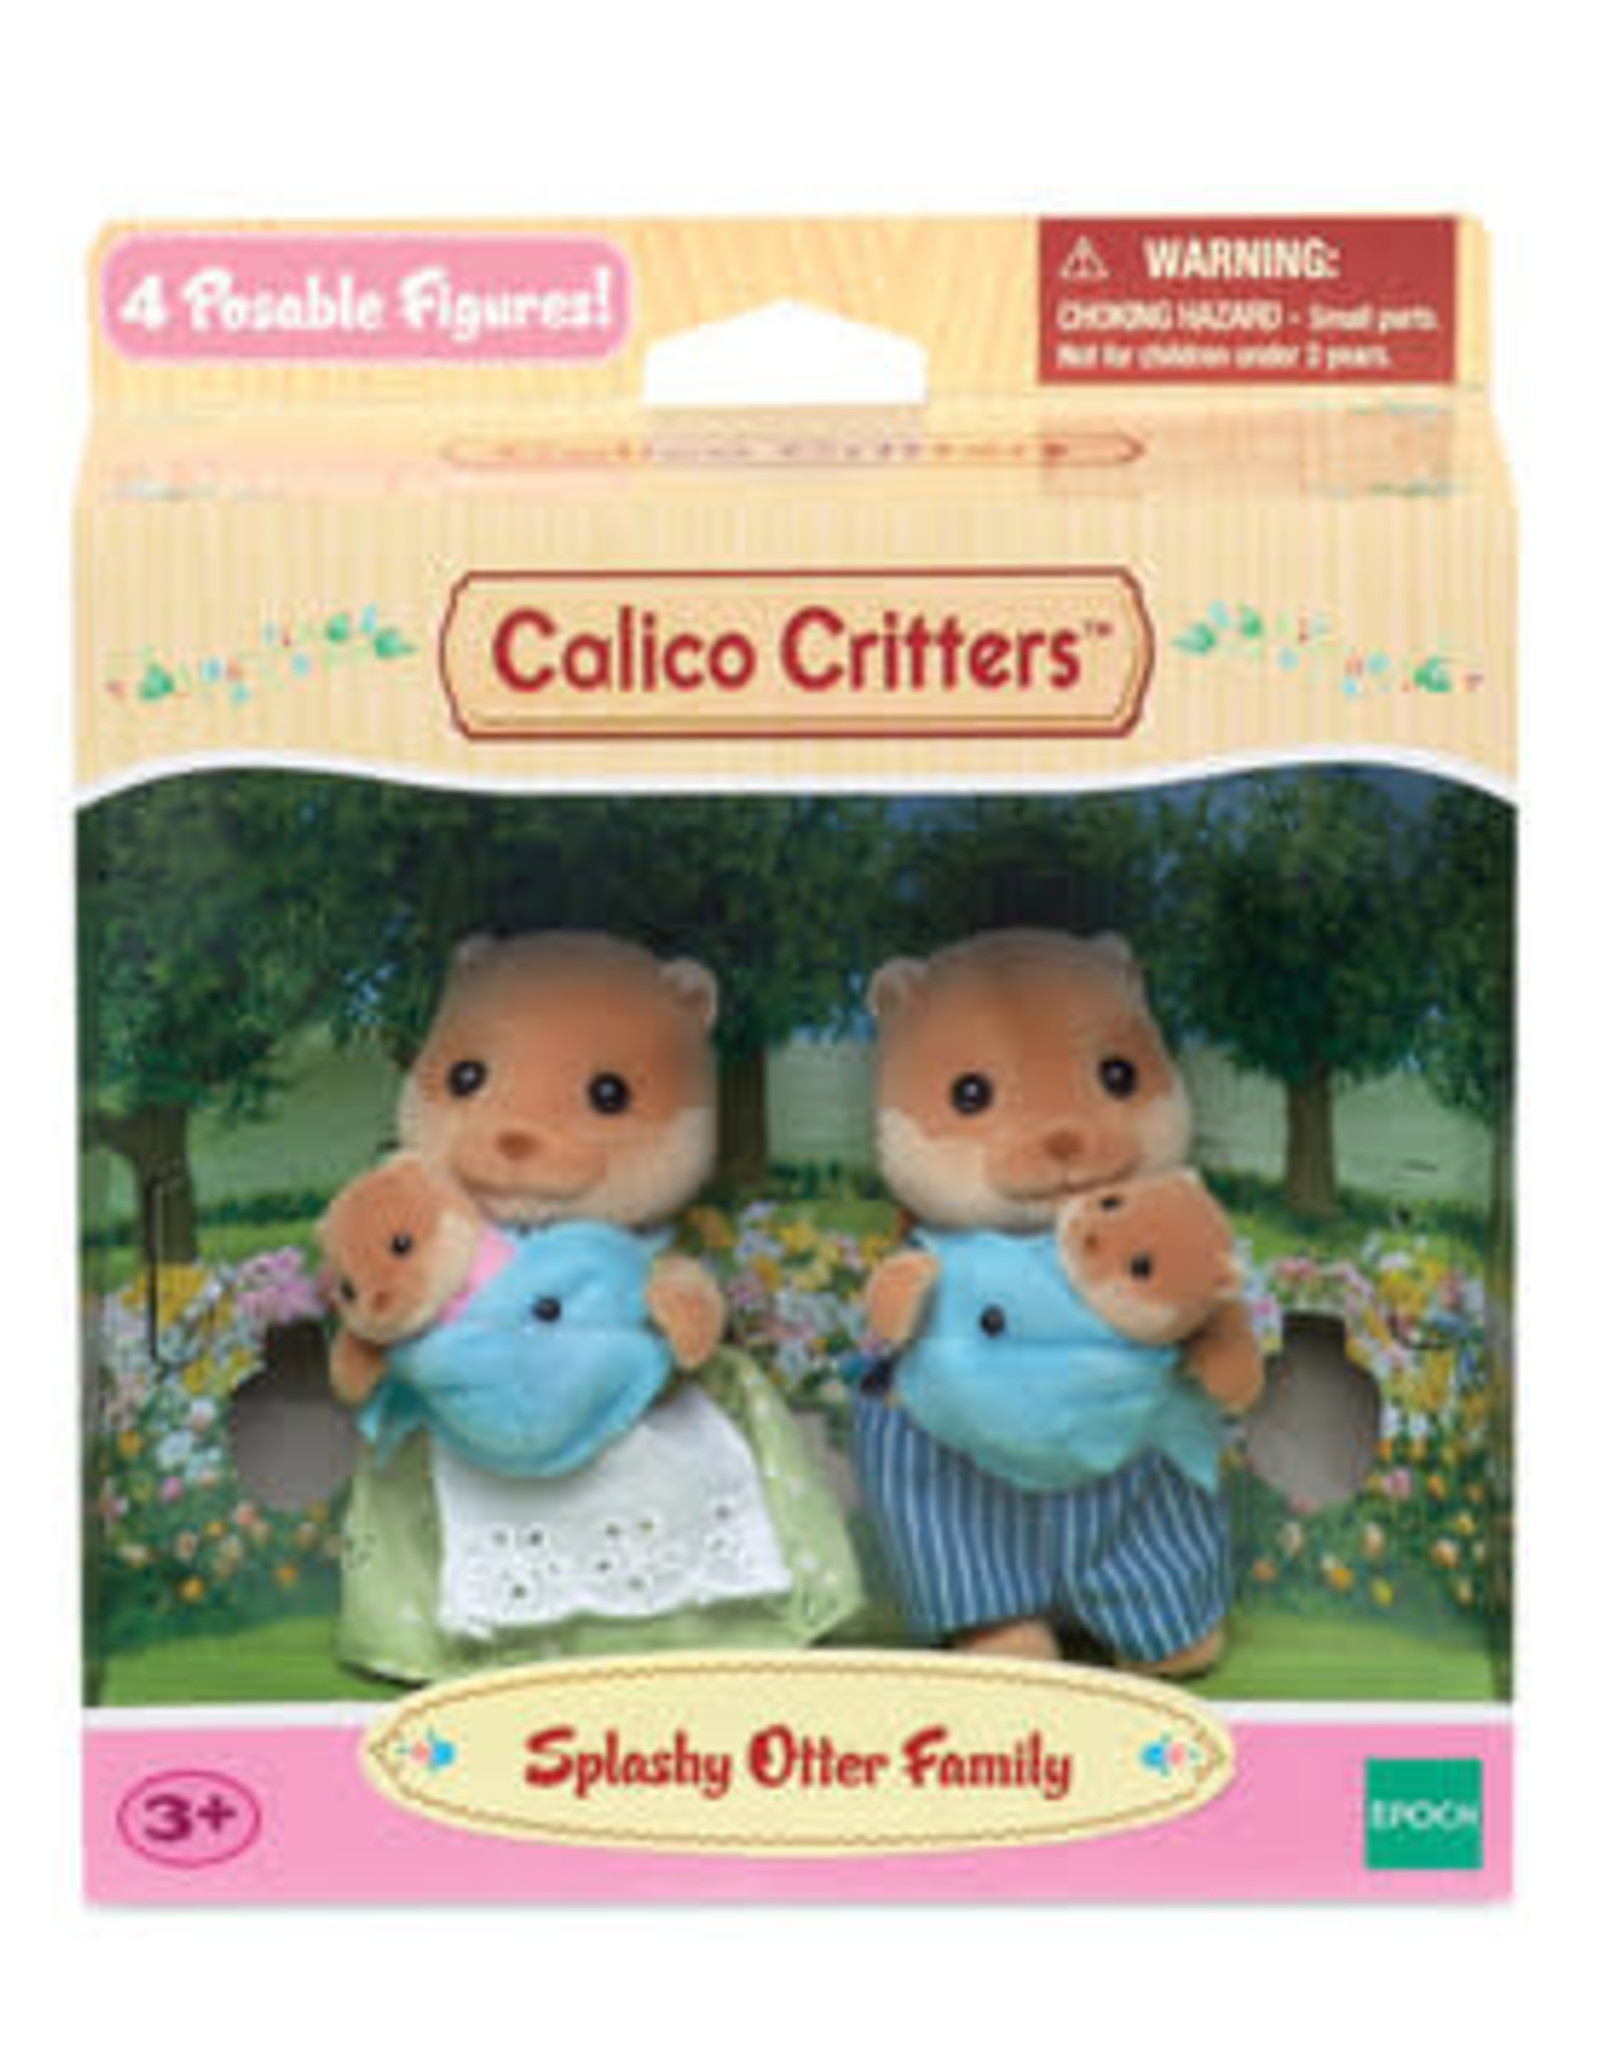 Calico Critters: Splashy Otter Family